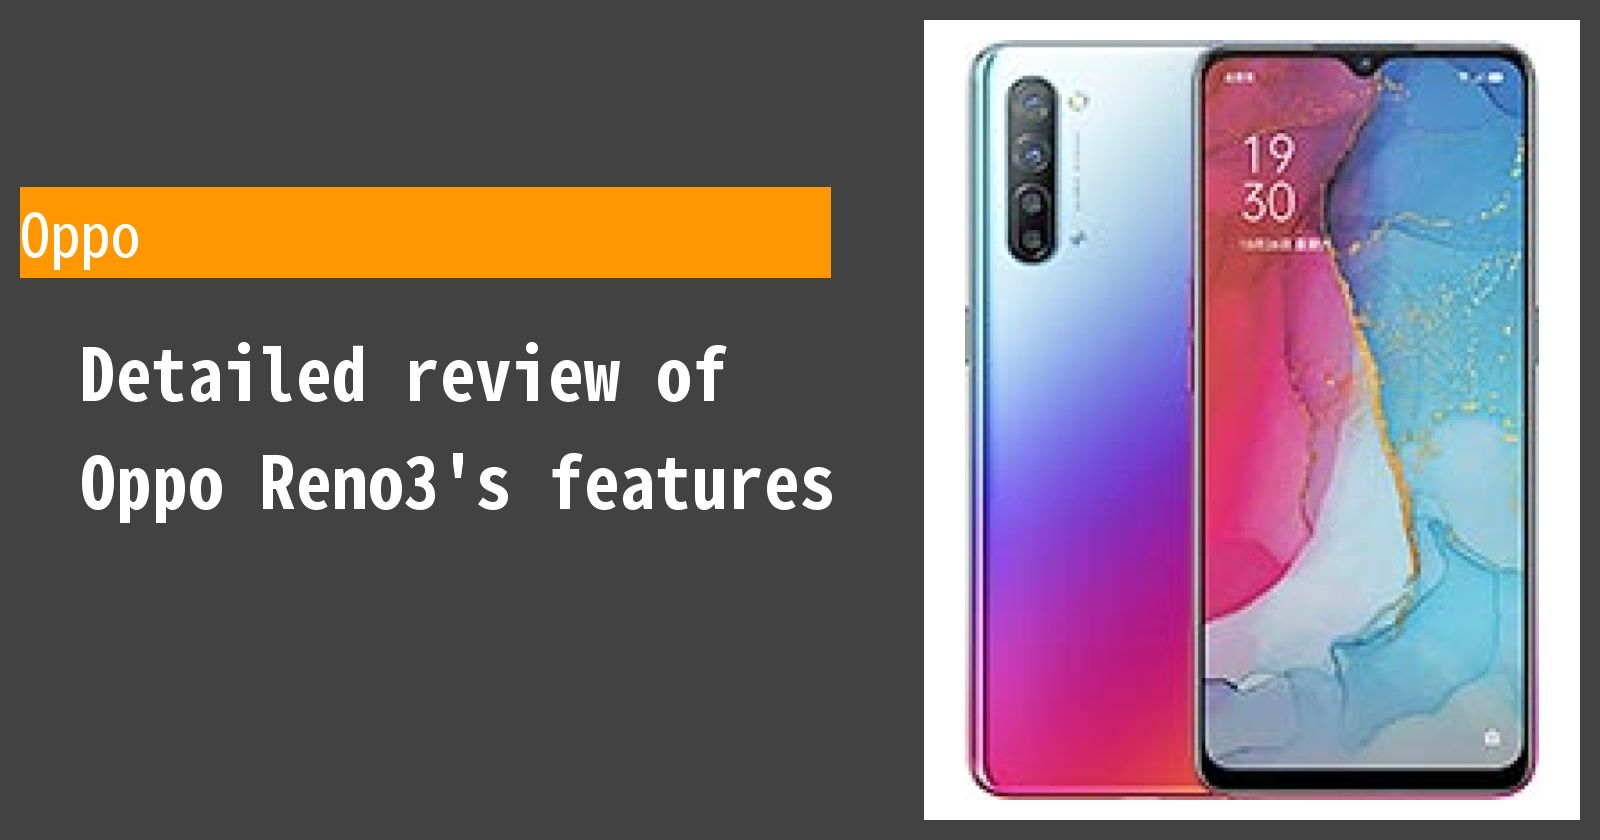 Detailed review of Oppo Reno3 5G's features